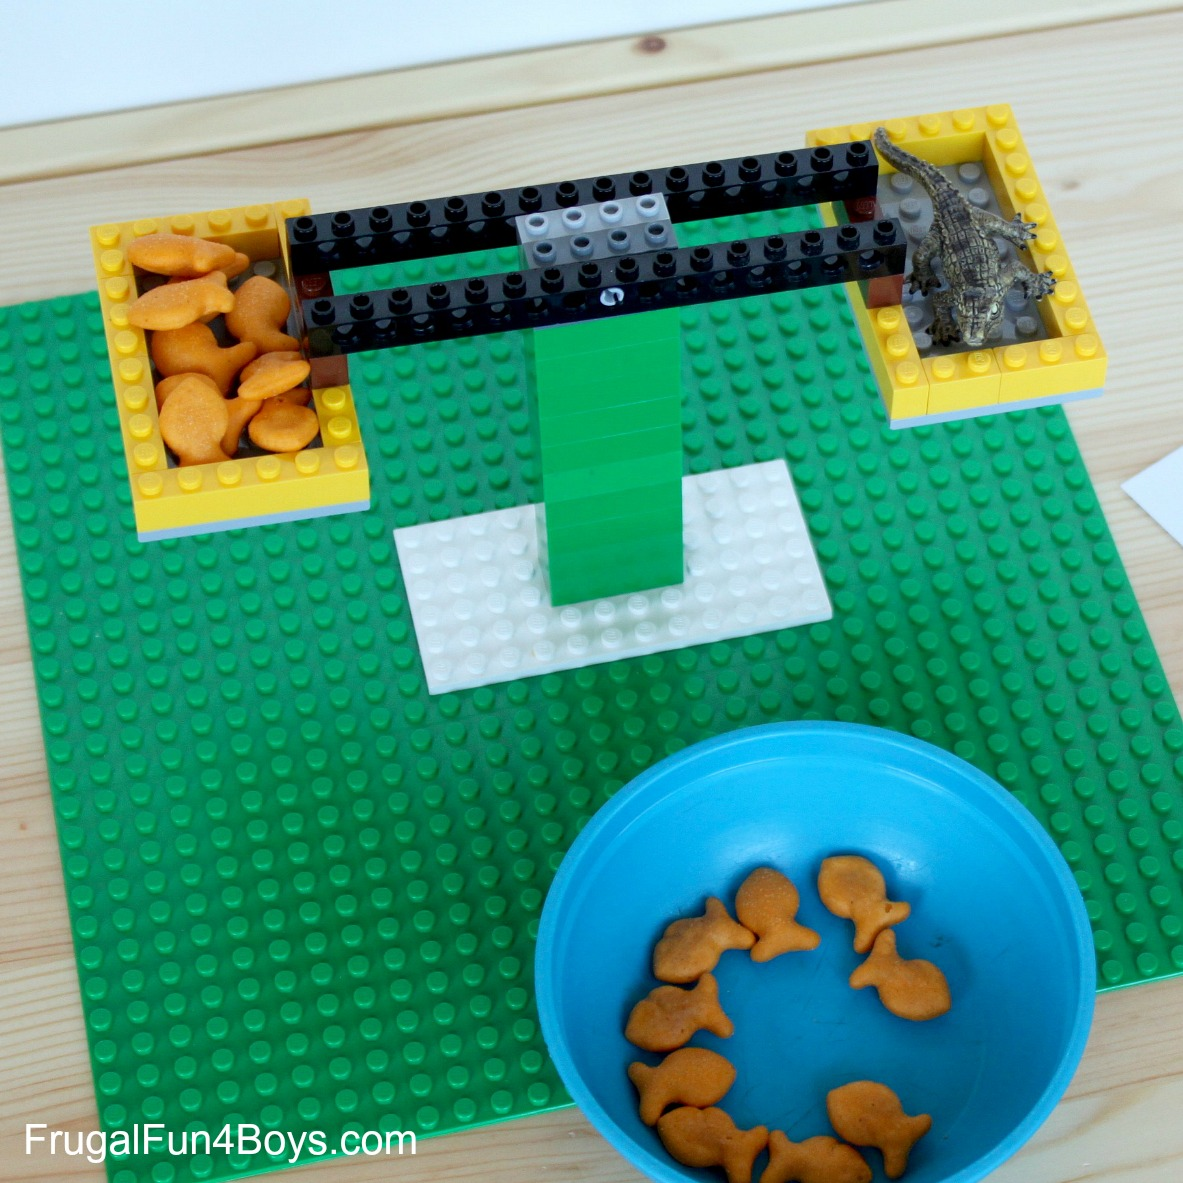 100 Lego Building Projects For Kids